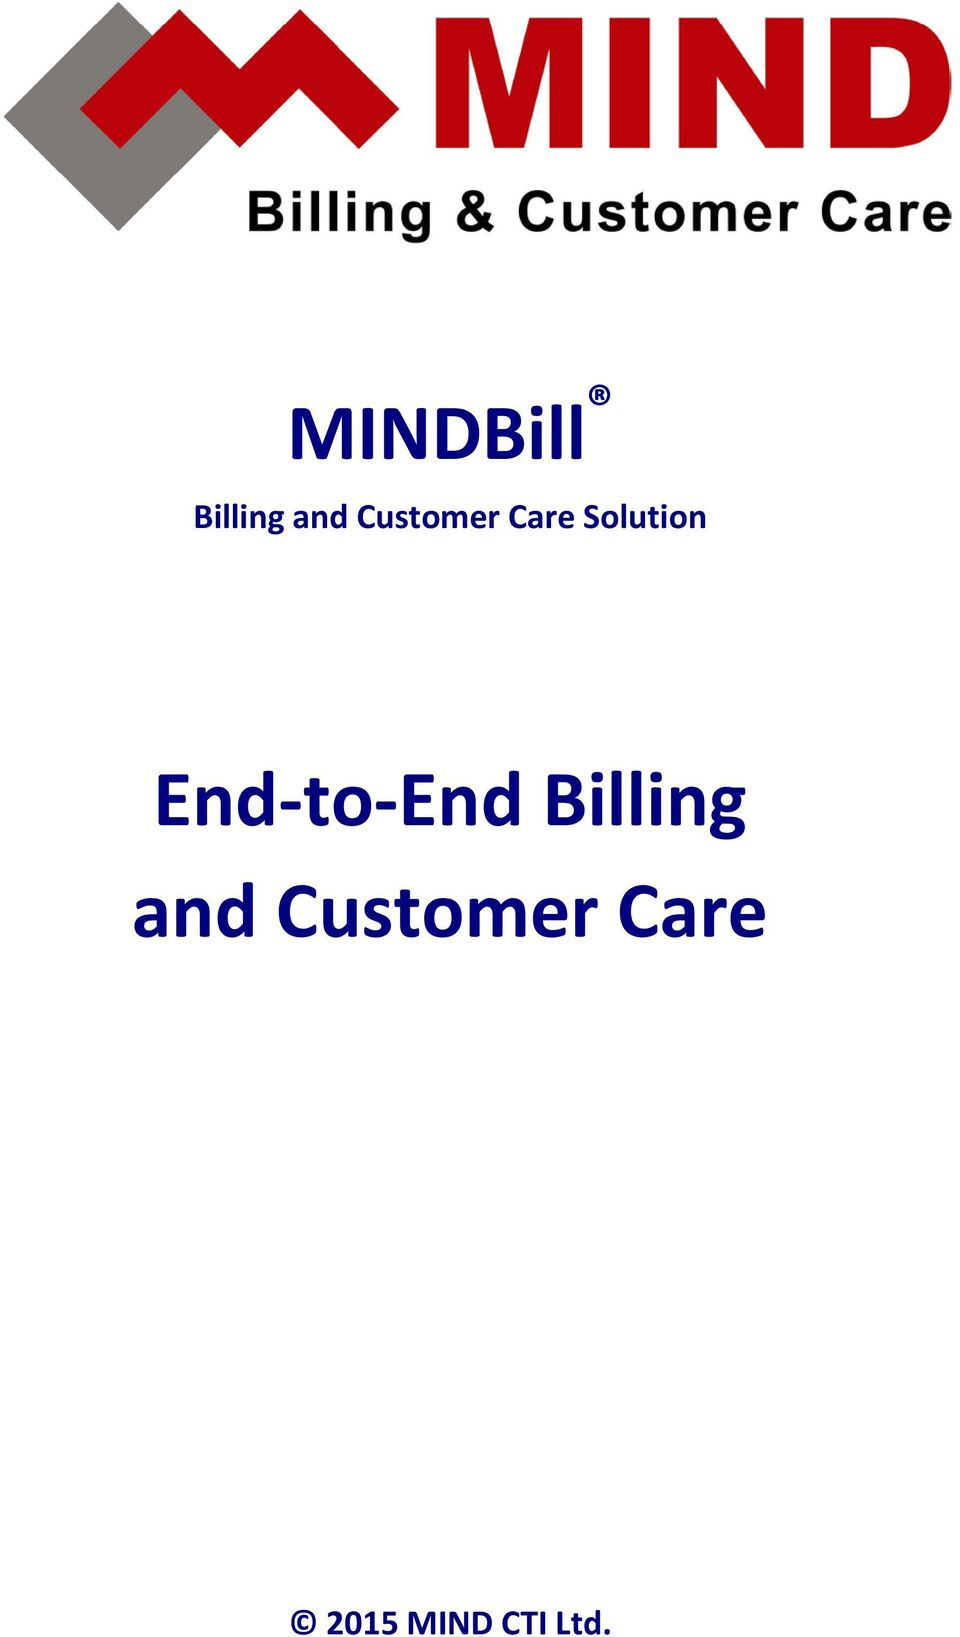 End-to-End Billing and